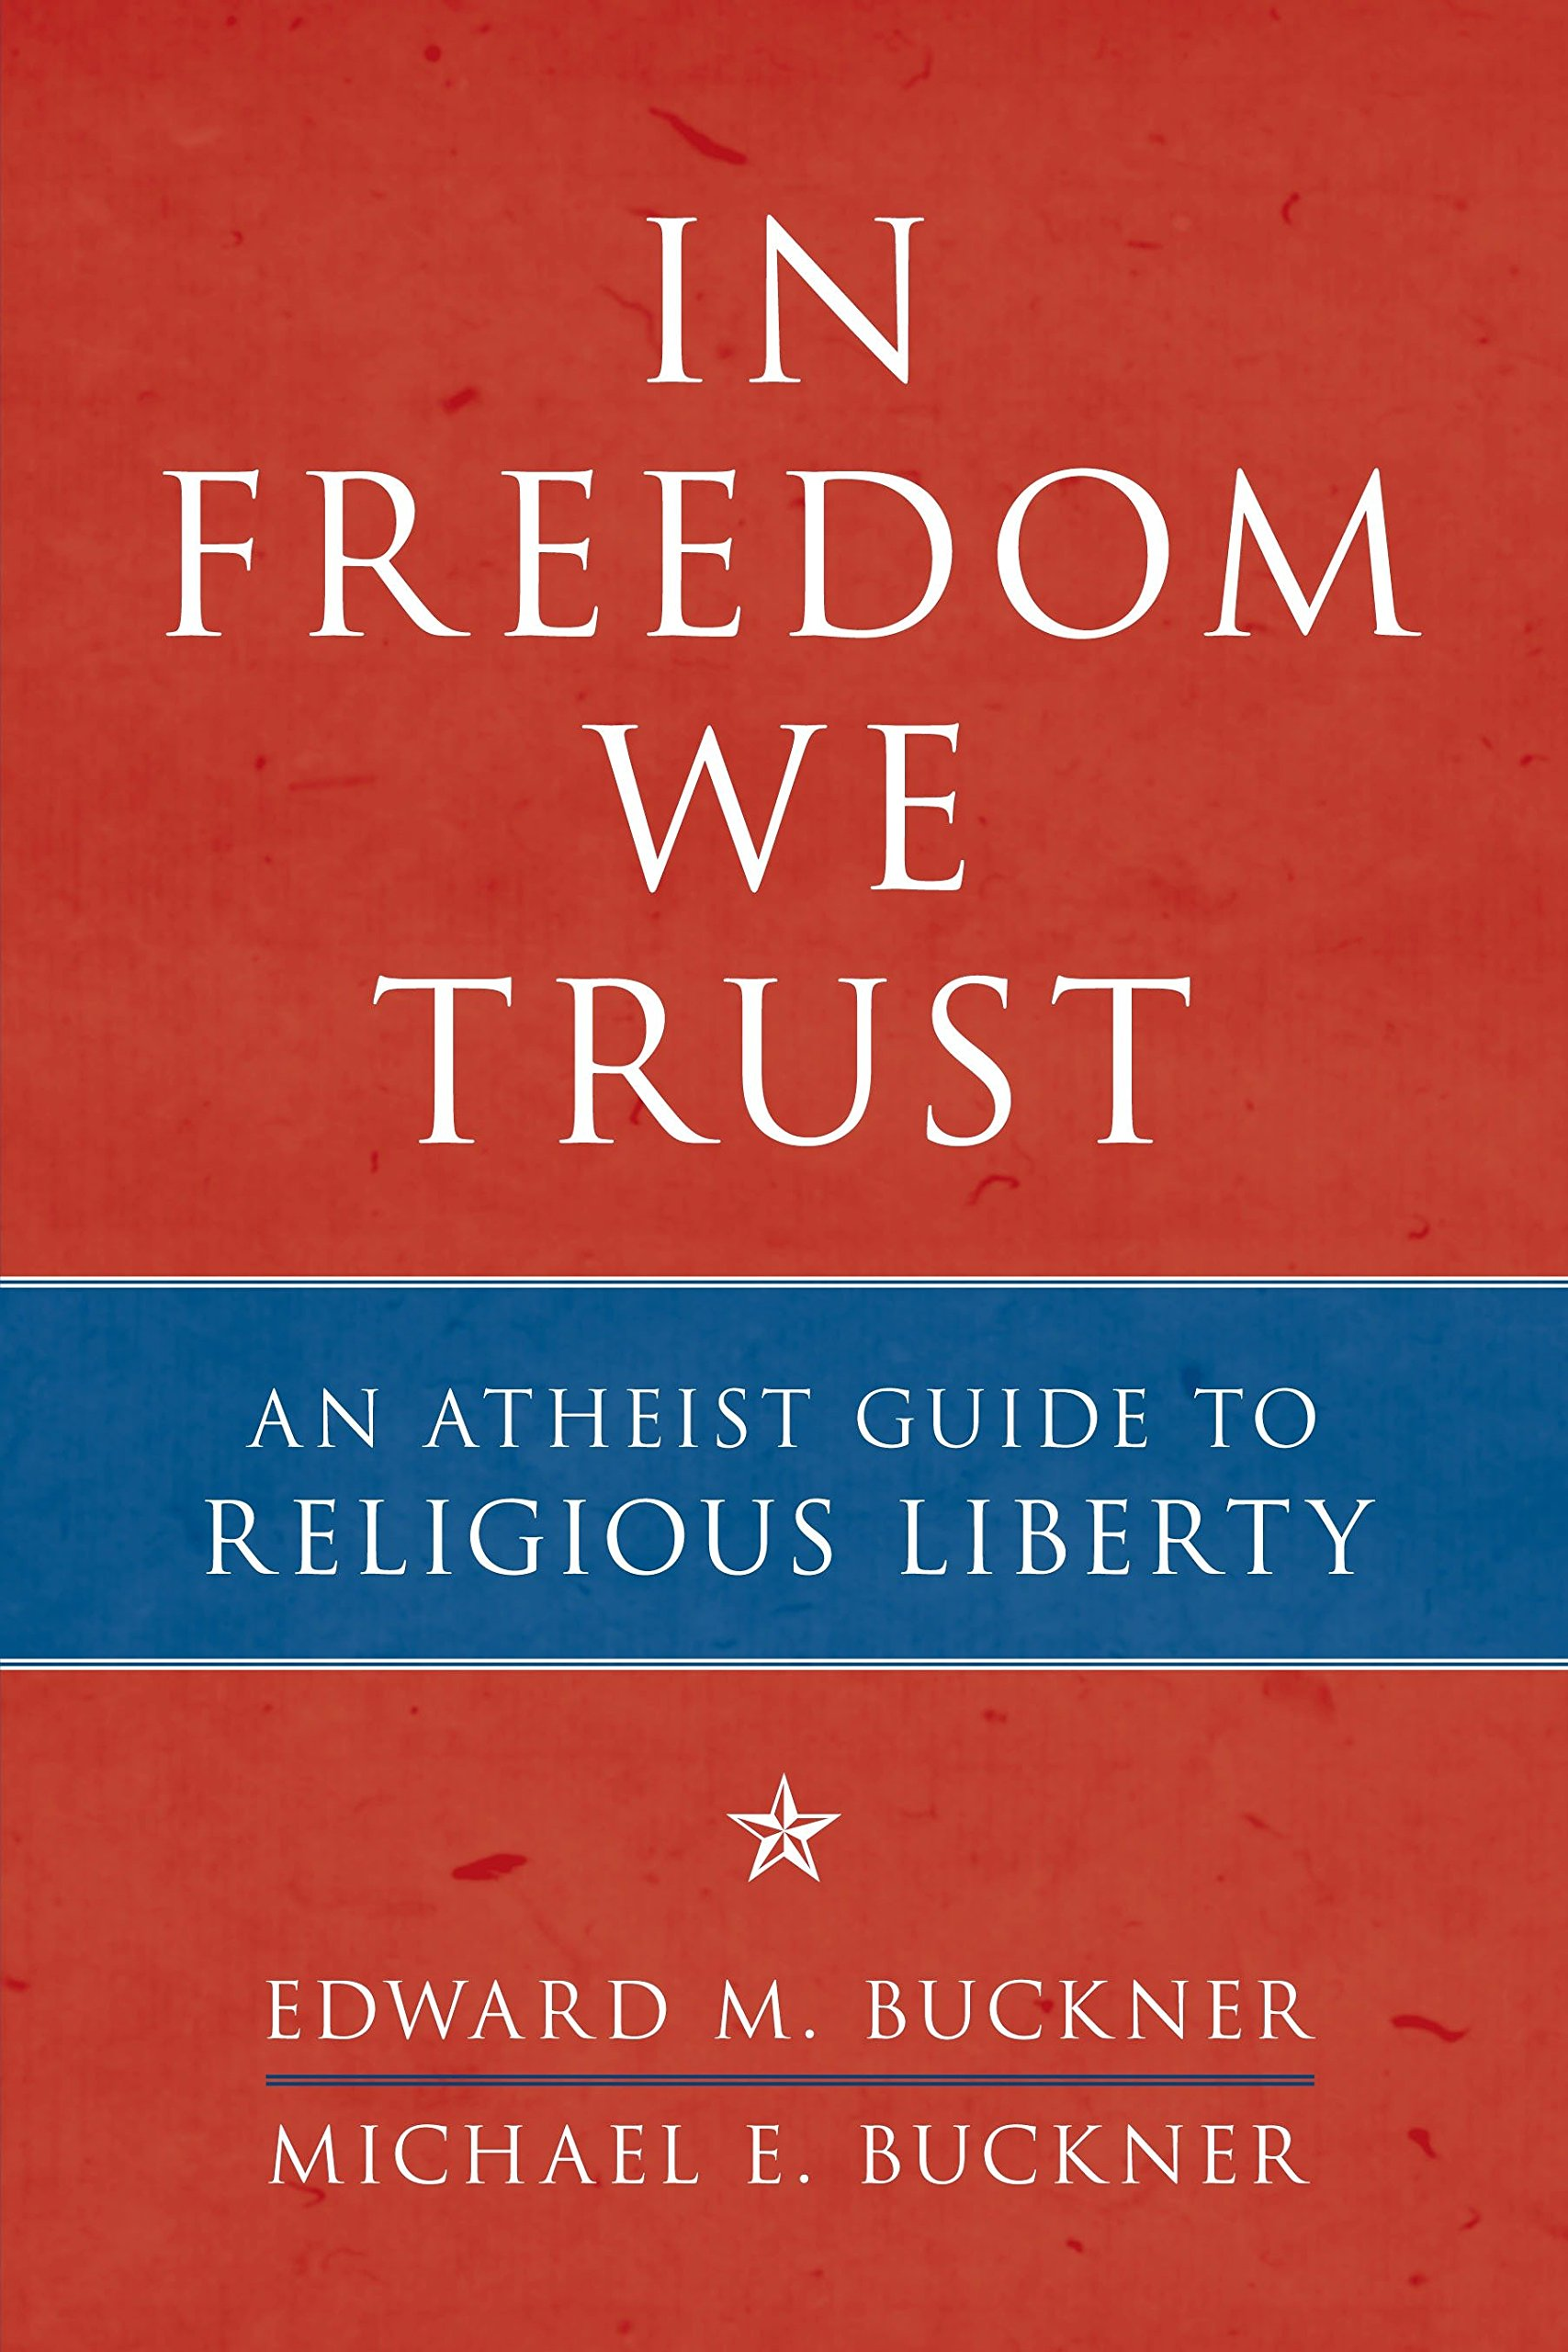 Amazon.com: In Freedom We Trust: An Atheist Guide to Religious Liberty  (9781616146443): Edward M. Buckner, Michael E. Buckner: Books